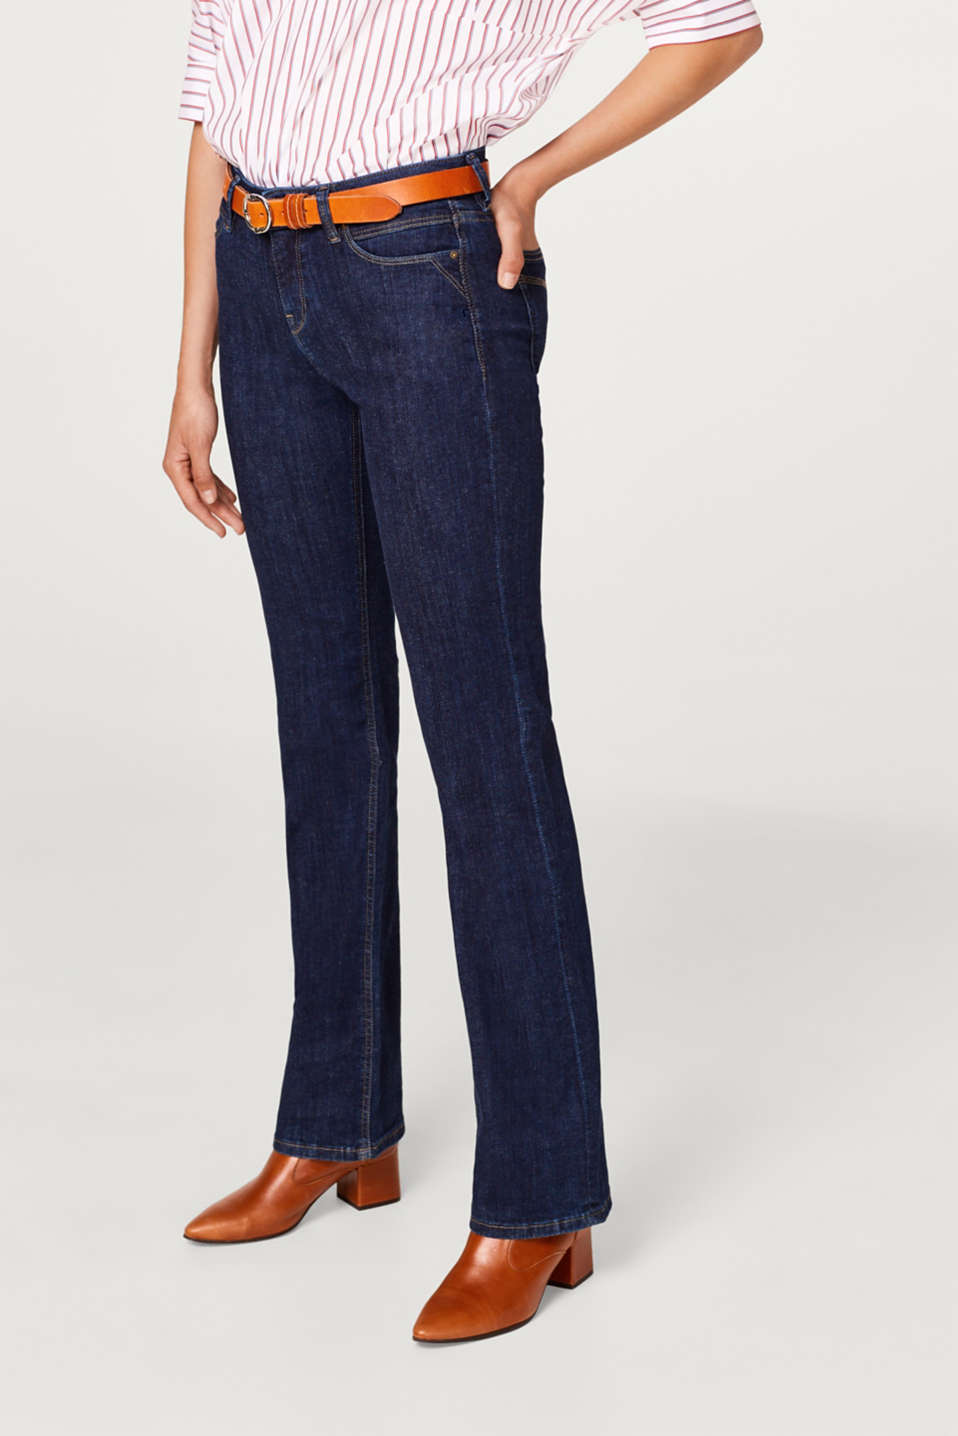 Esprit - Superstretch-Jeans mit Bootcut